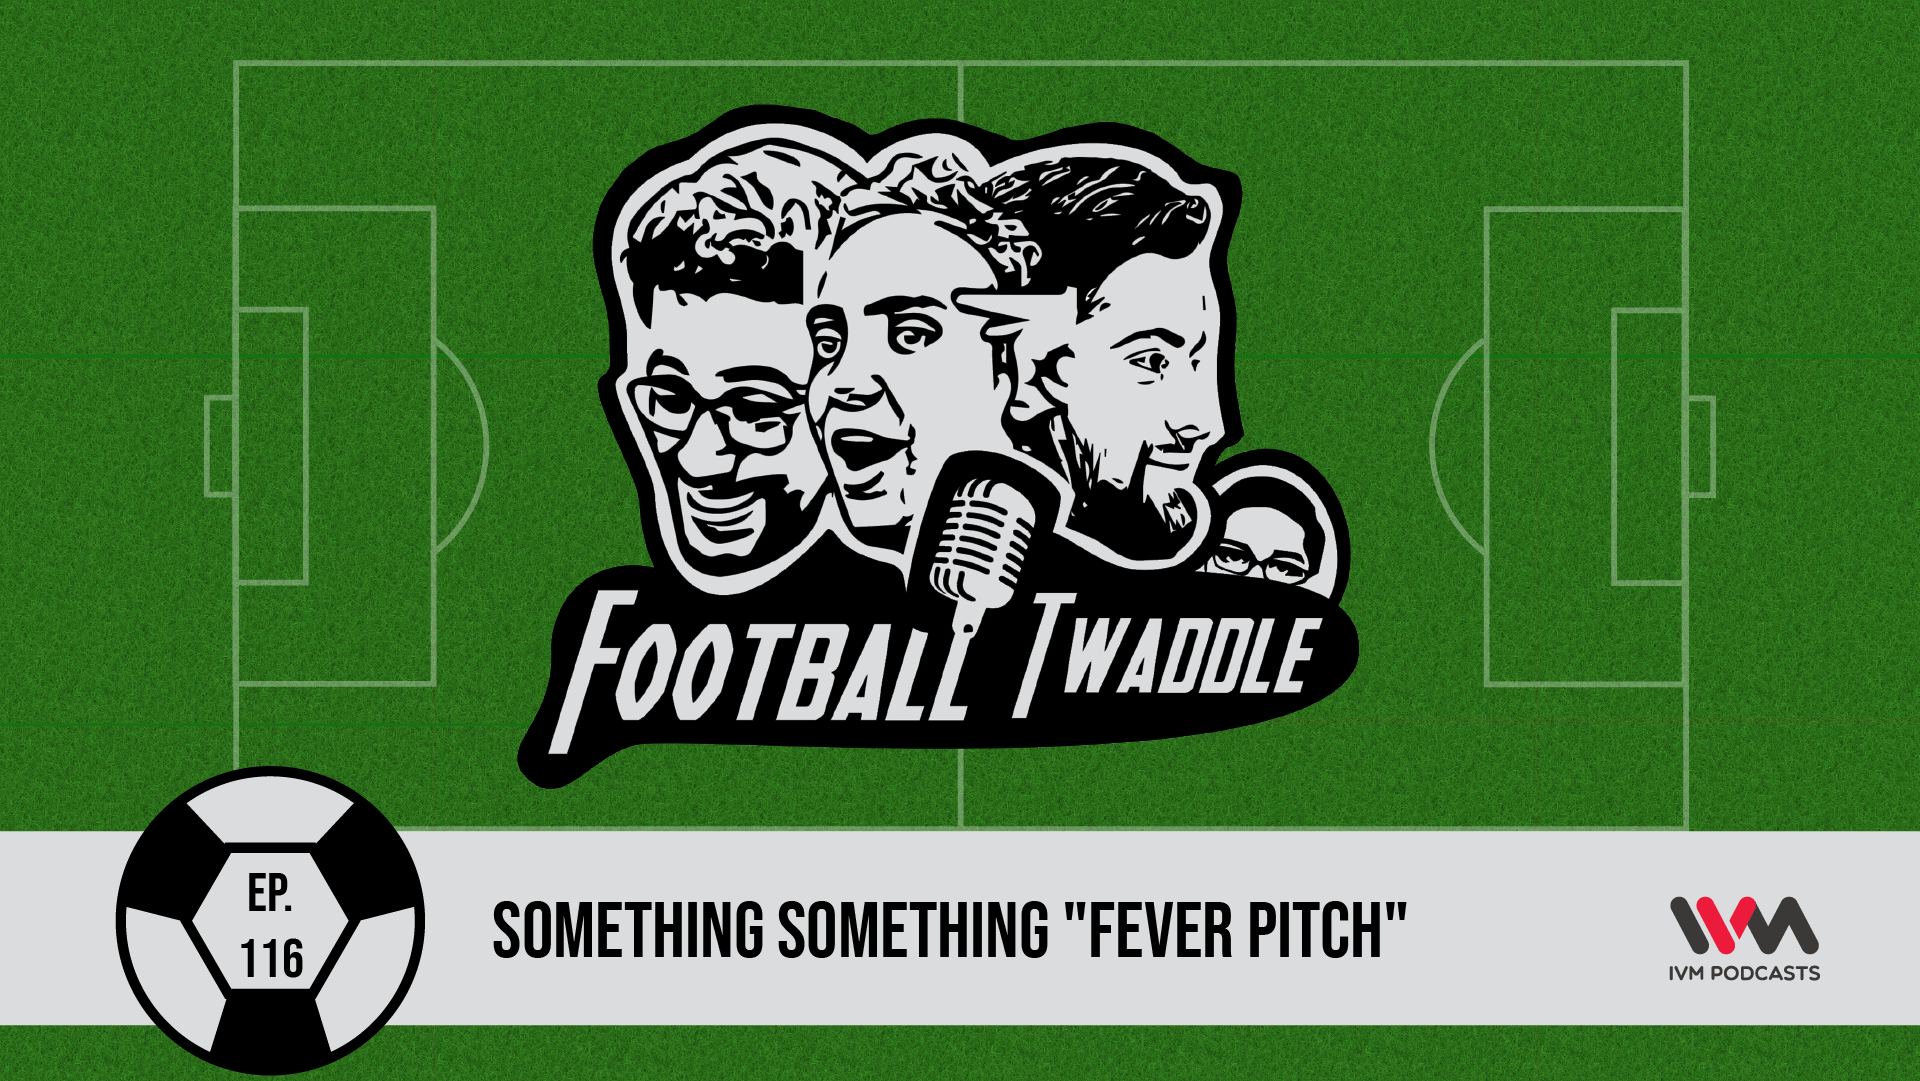 FootballTwaddleEpisode116.png